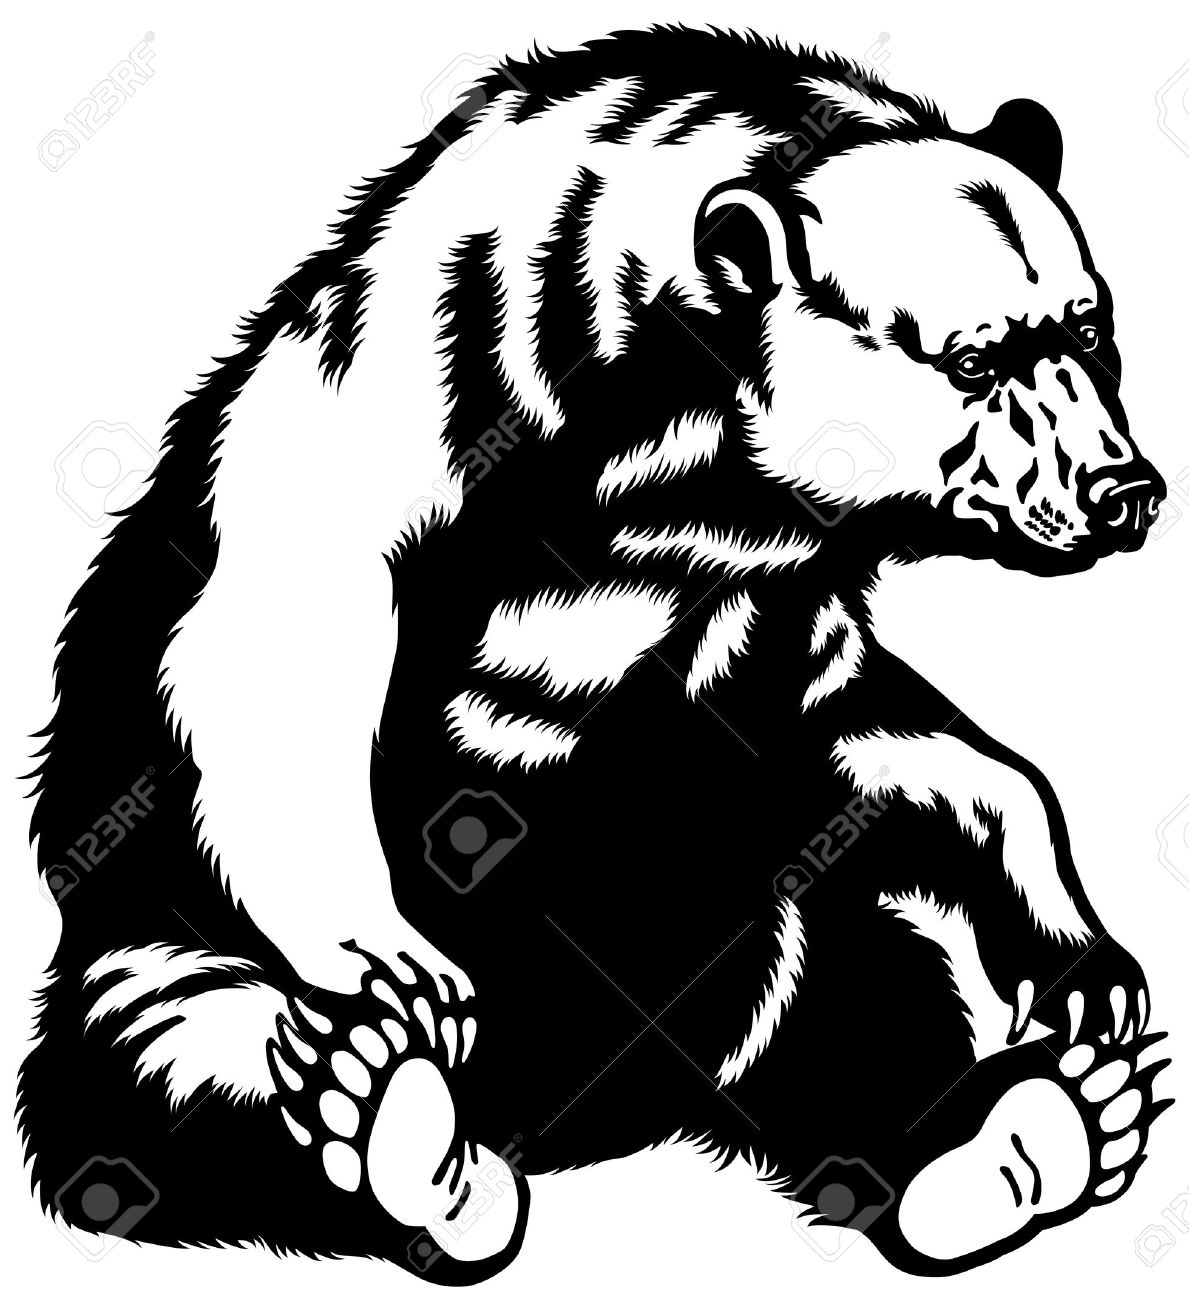 Balck bear drawing clipart clipart royalty free Bear black white clipart black bear collection black drawing ... clipart royalty free